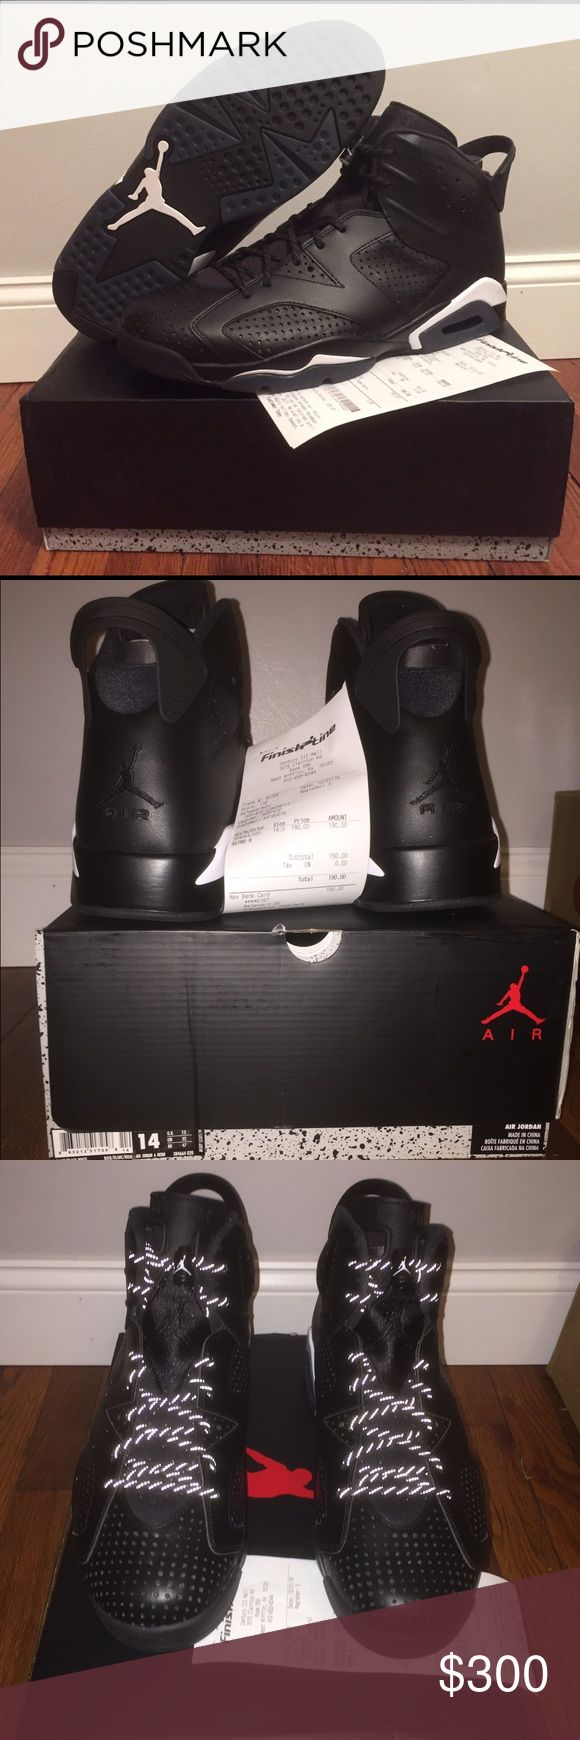 "Jordan retro 6 ""black cat"" Brand new. Ds. Never worn or tried on. Size 14 Jordan Shoes Sneakers"